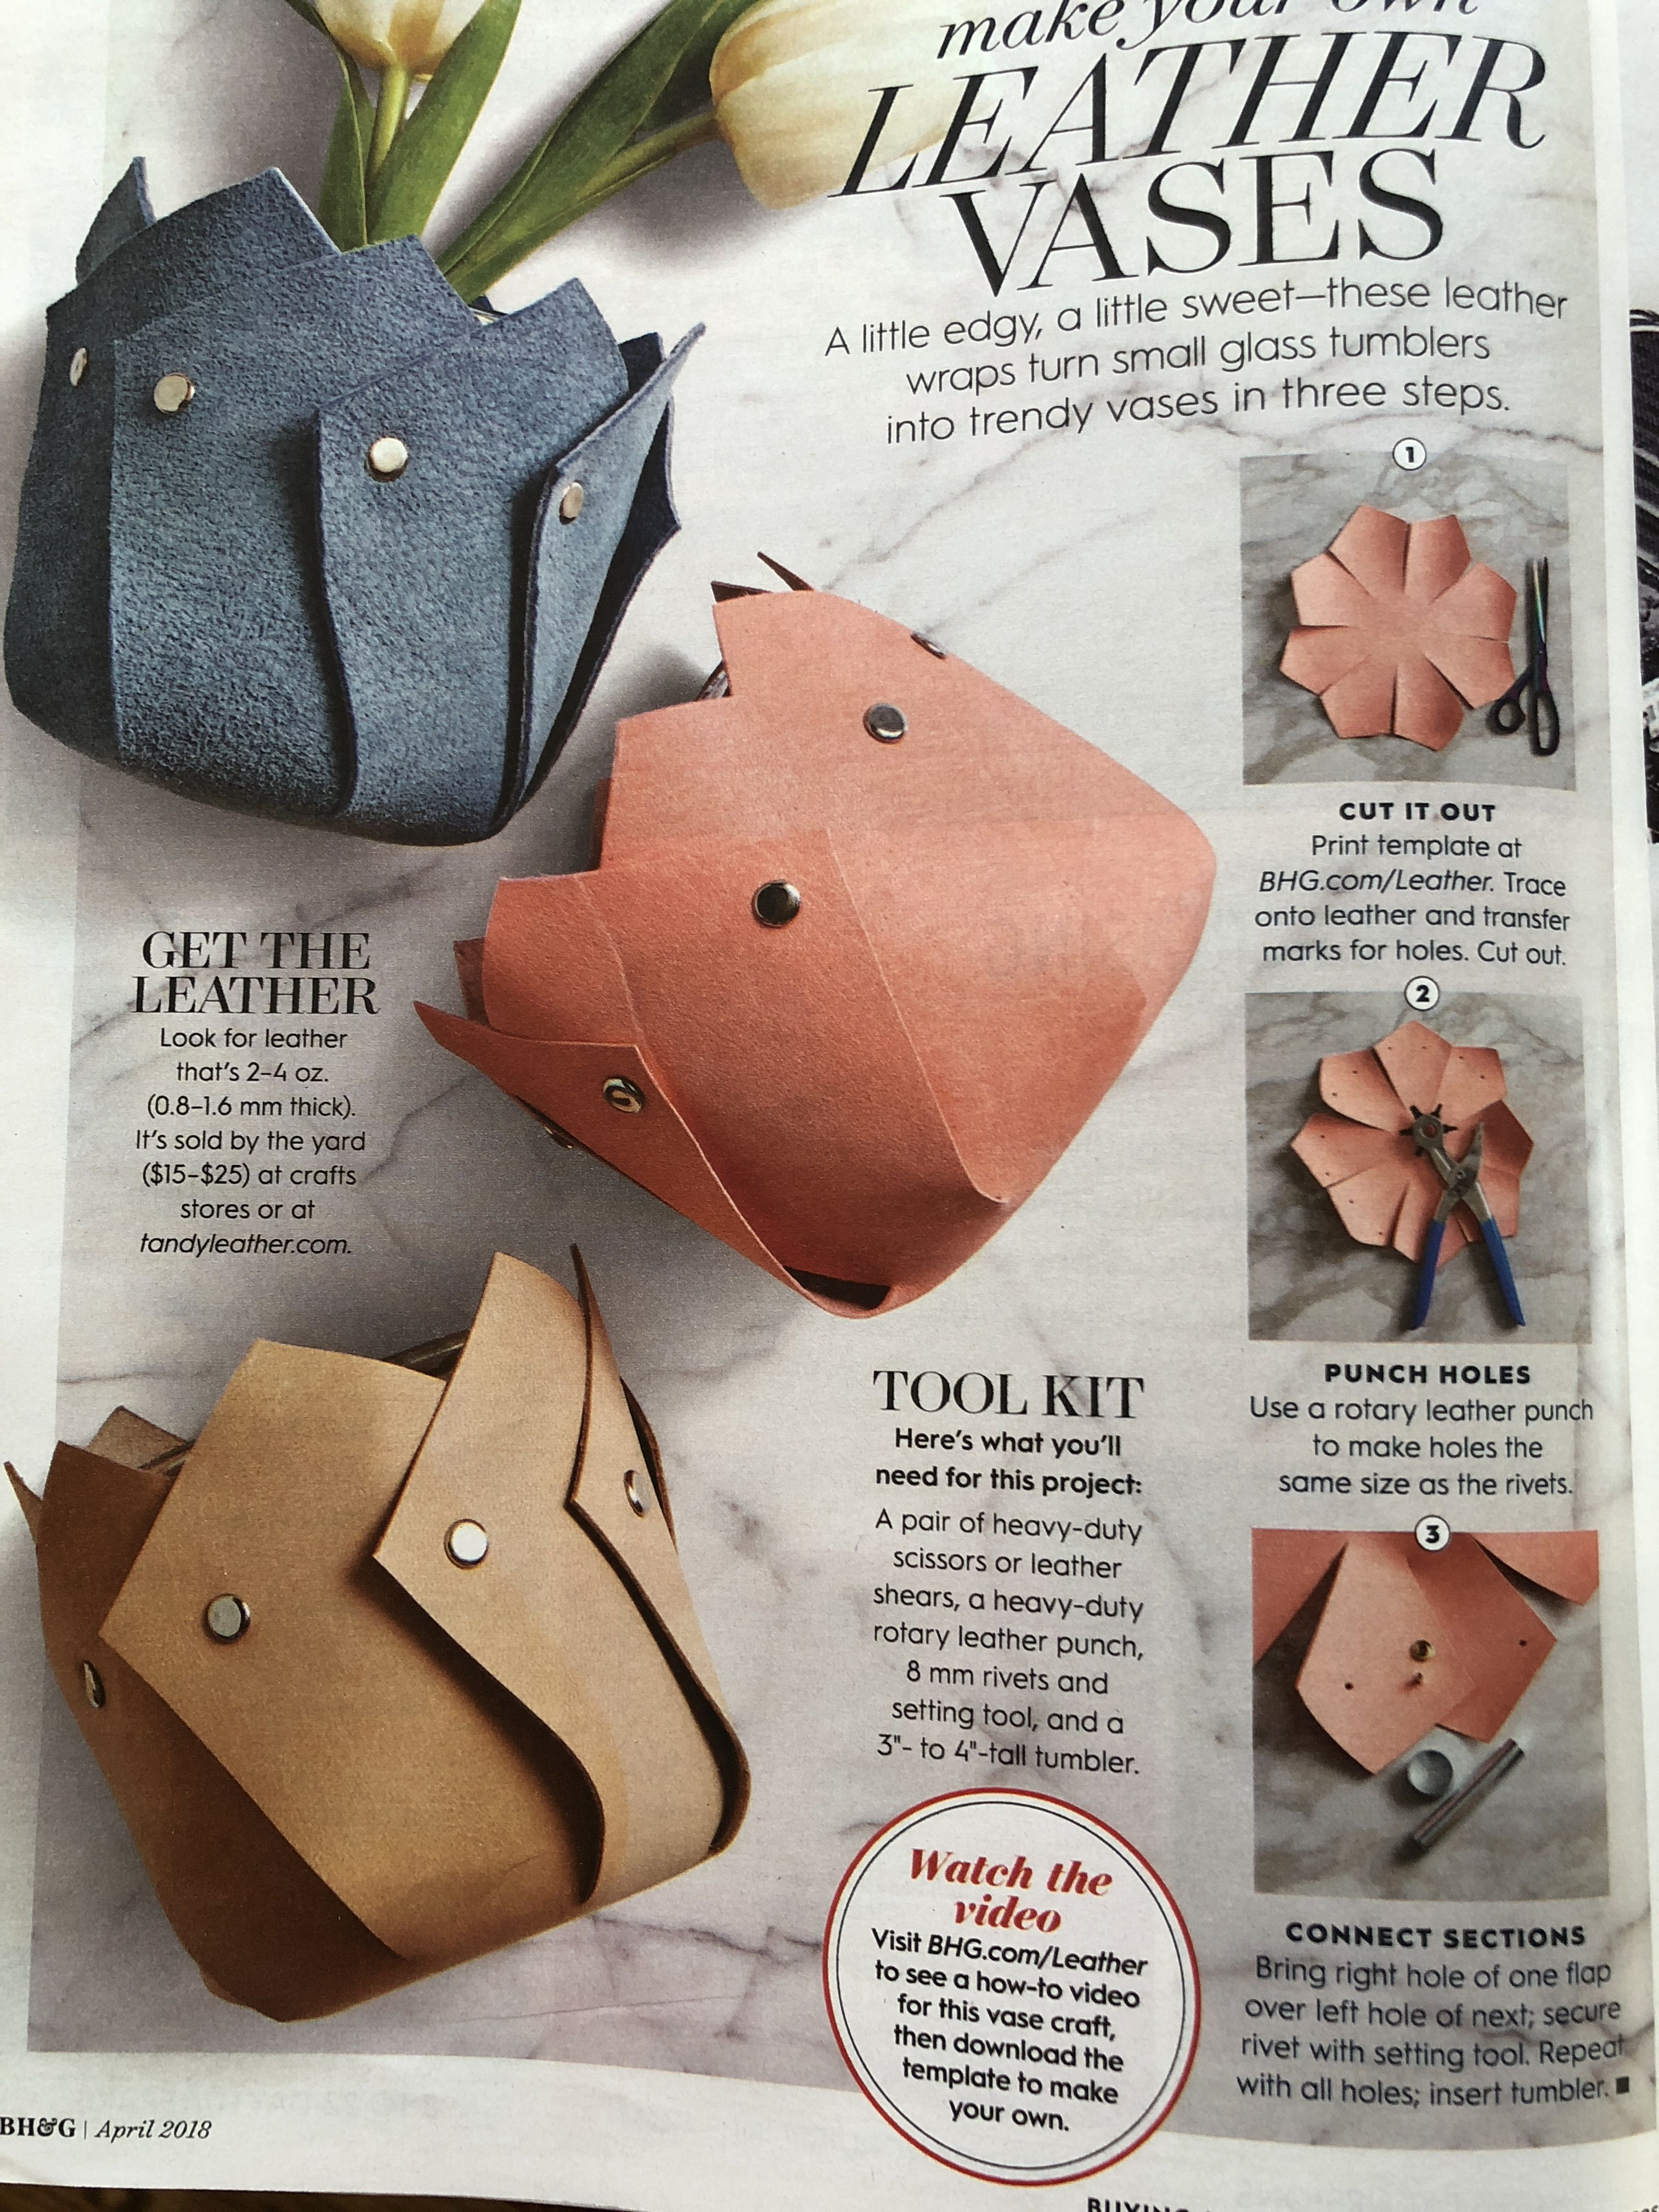 Pin By Andrea On Its A Martha Stewart Day Leather Craft Things